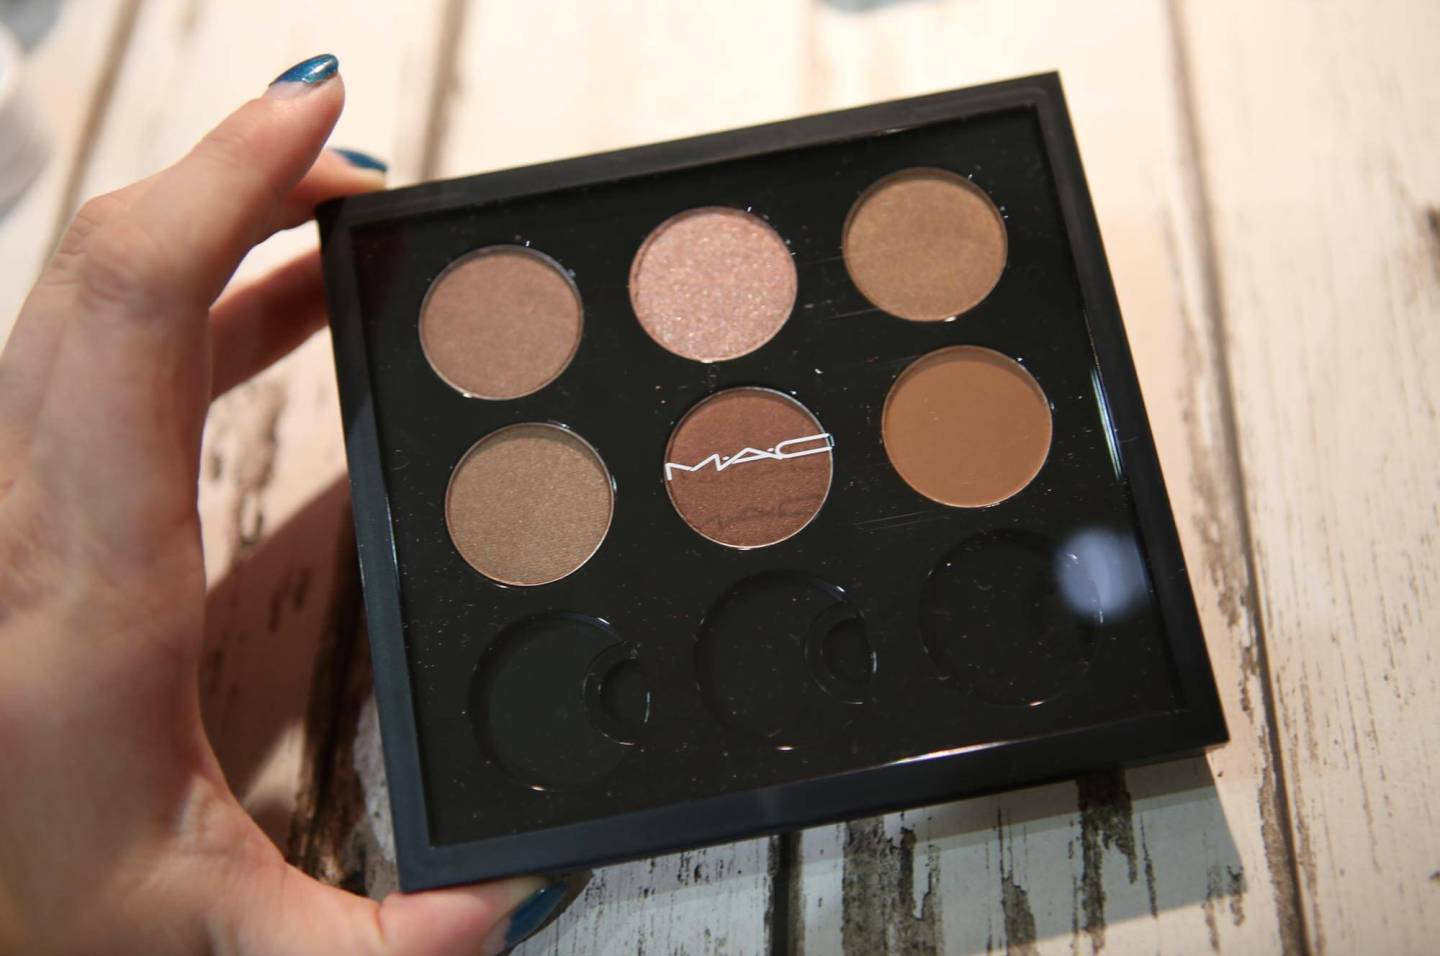 Creating My First Mac Customized Eyeshadow Palette